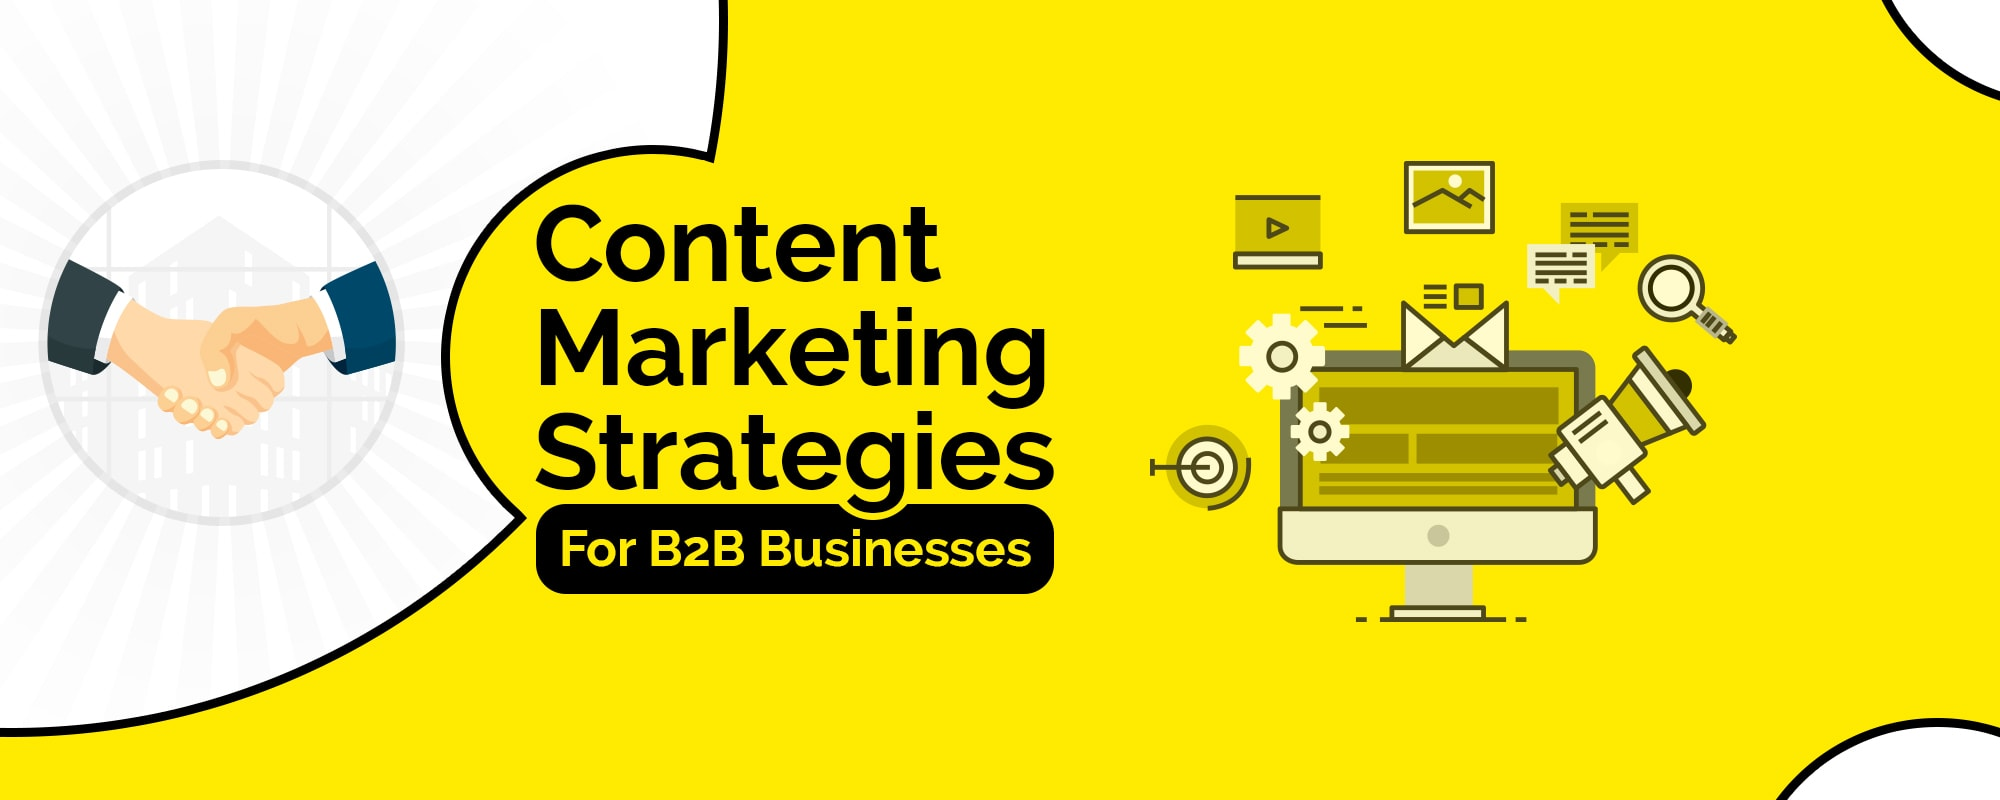 Content Marketing Strategies For B2B Businesses To Generate Leads